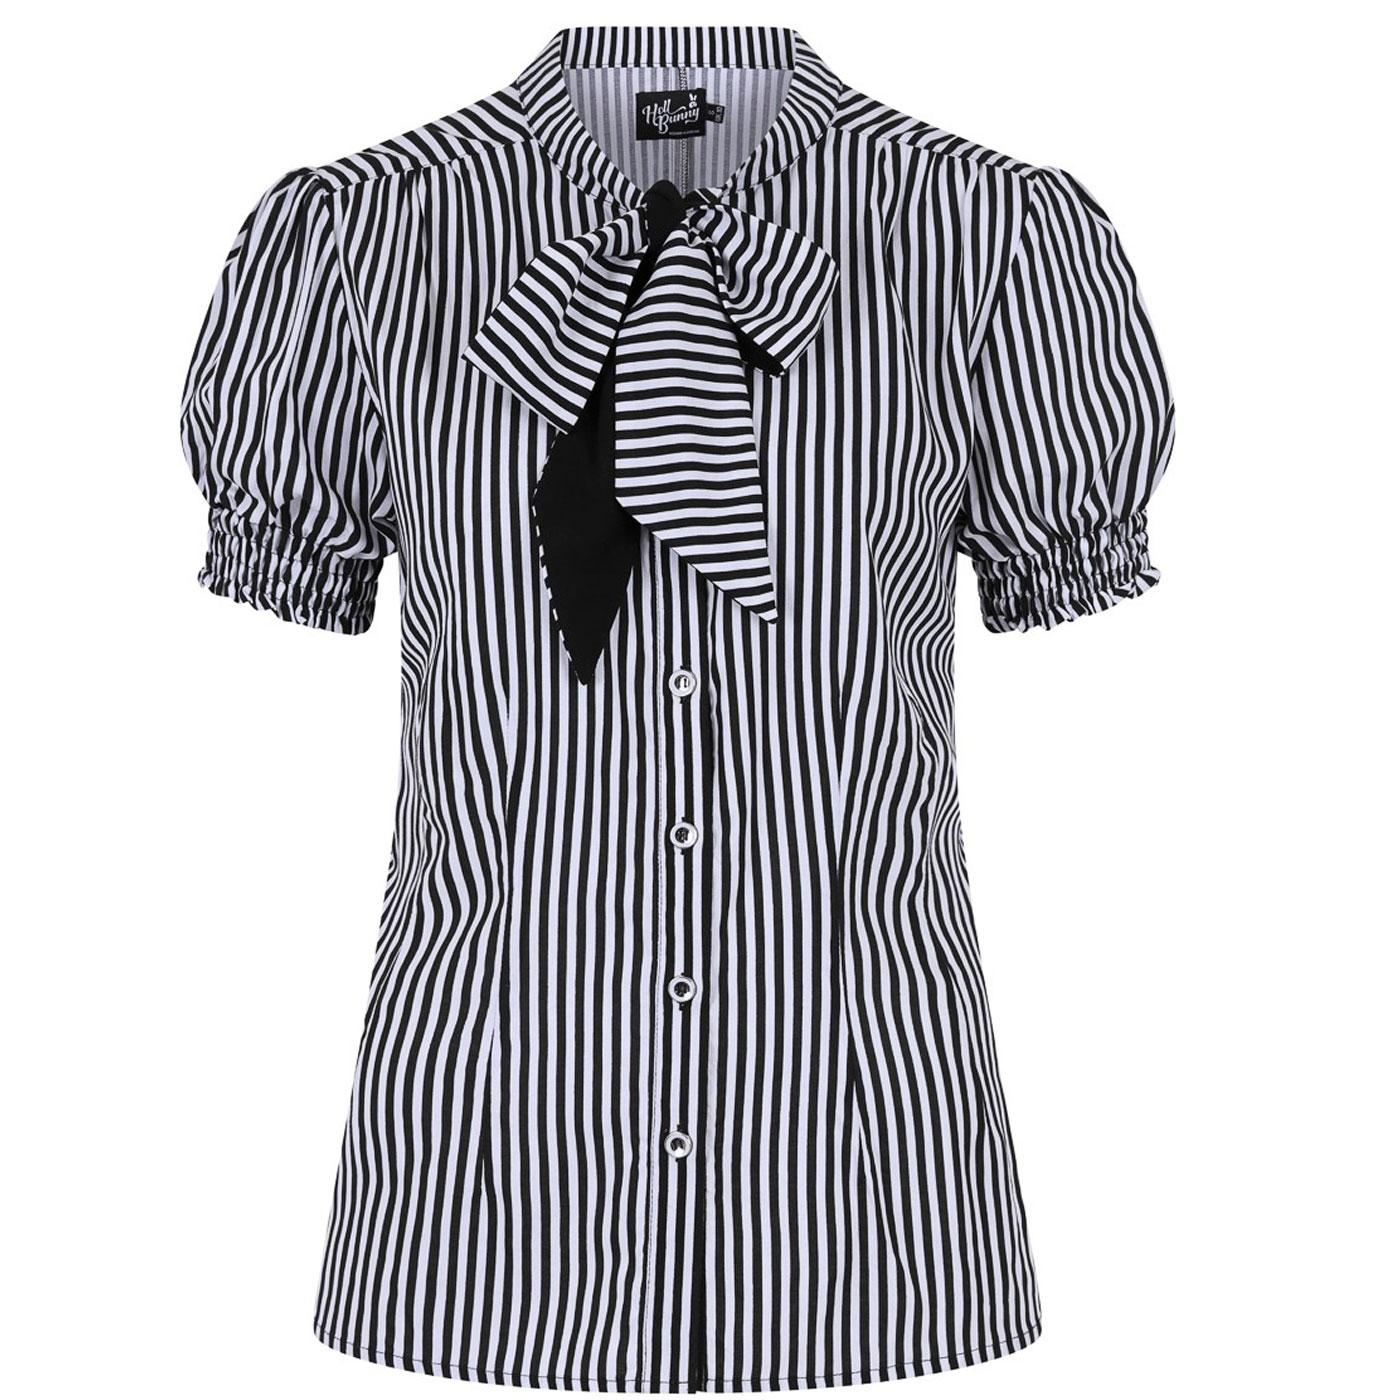 Humbug HELL BUNNY Vintage Striped B/W Blouse